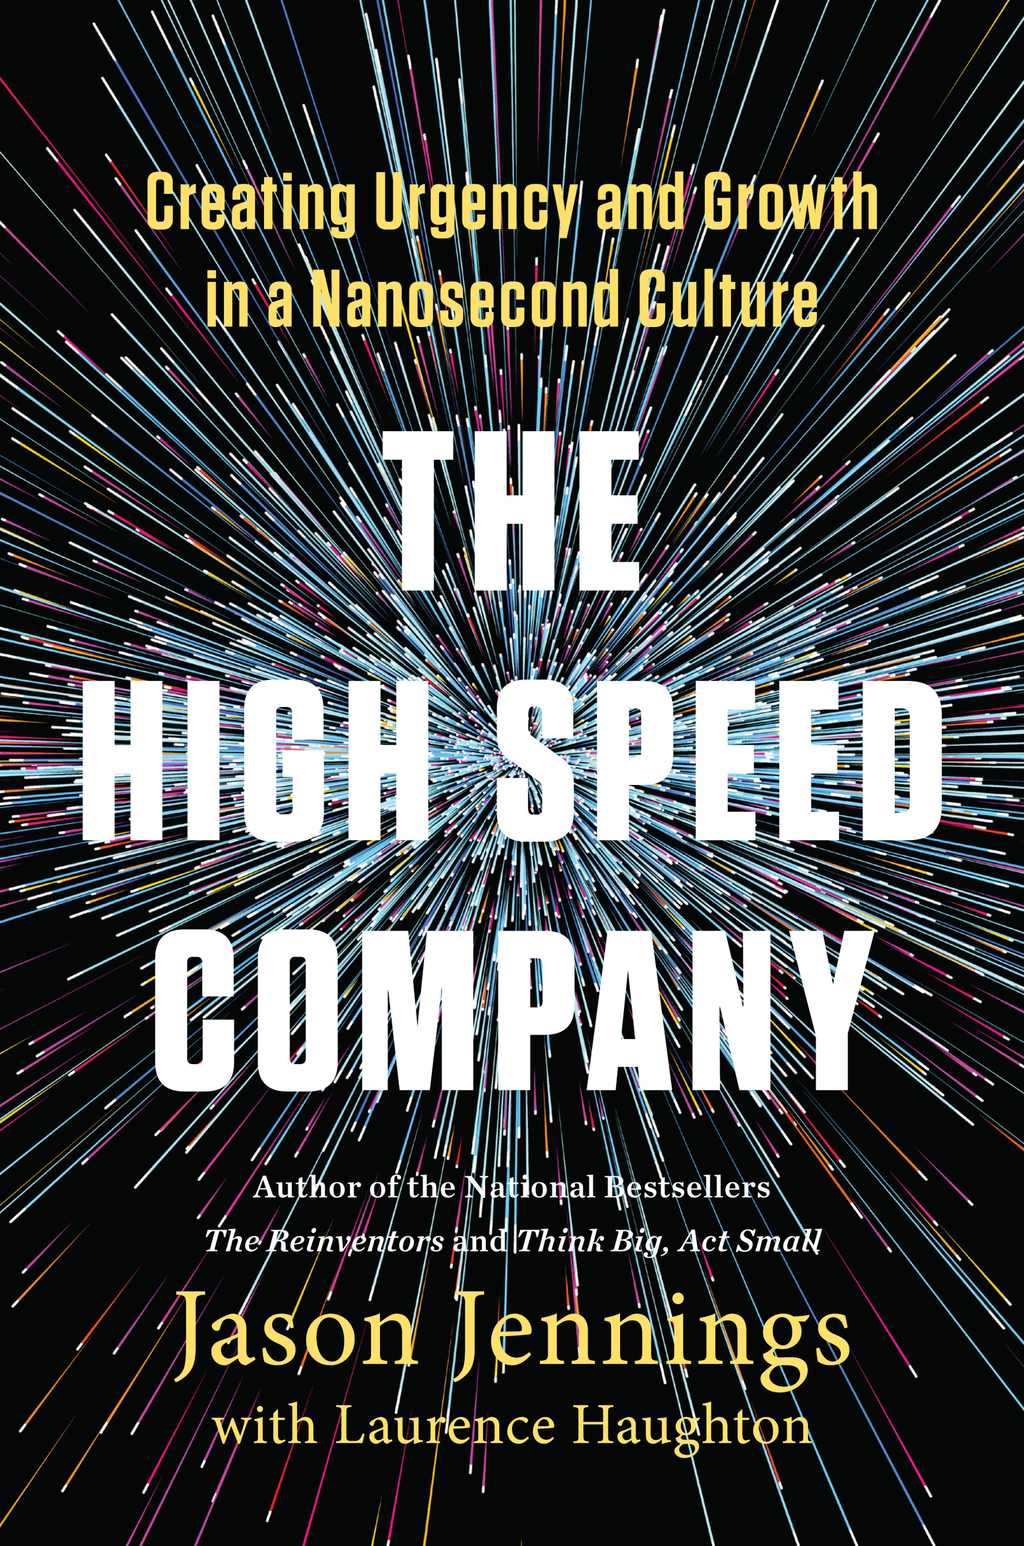 The High-Speed Company Creating Urgency and Growth in a Nanosecond Culture